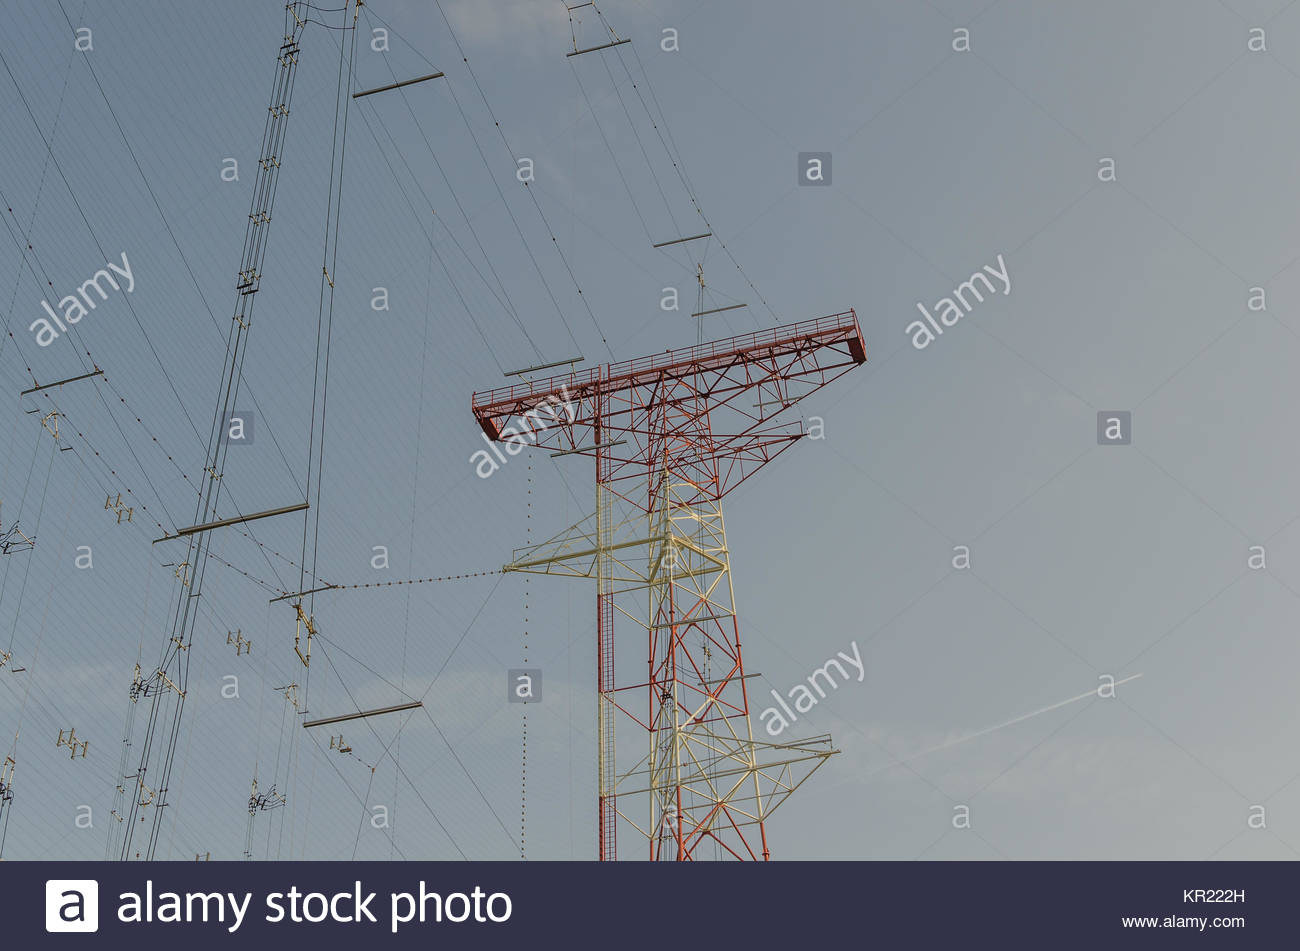 transmission system sky Stock Photo